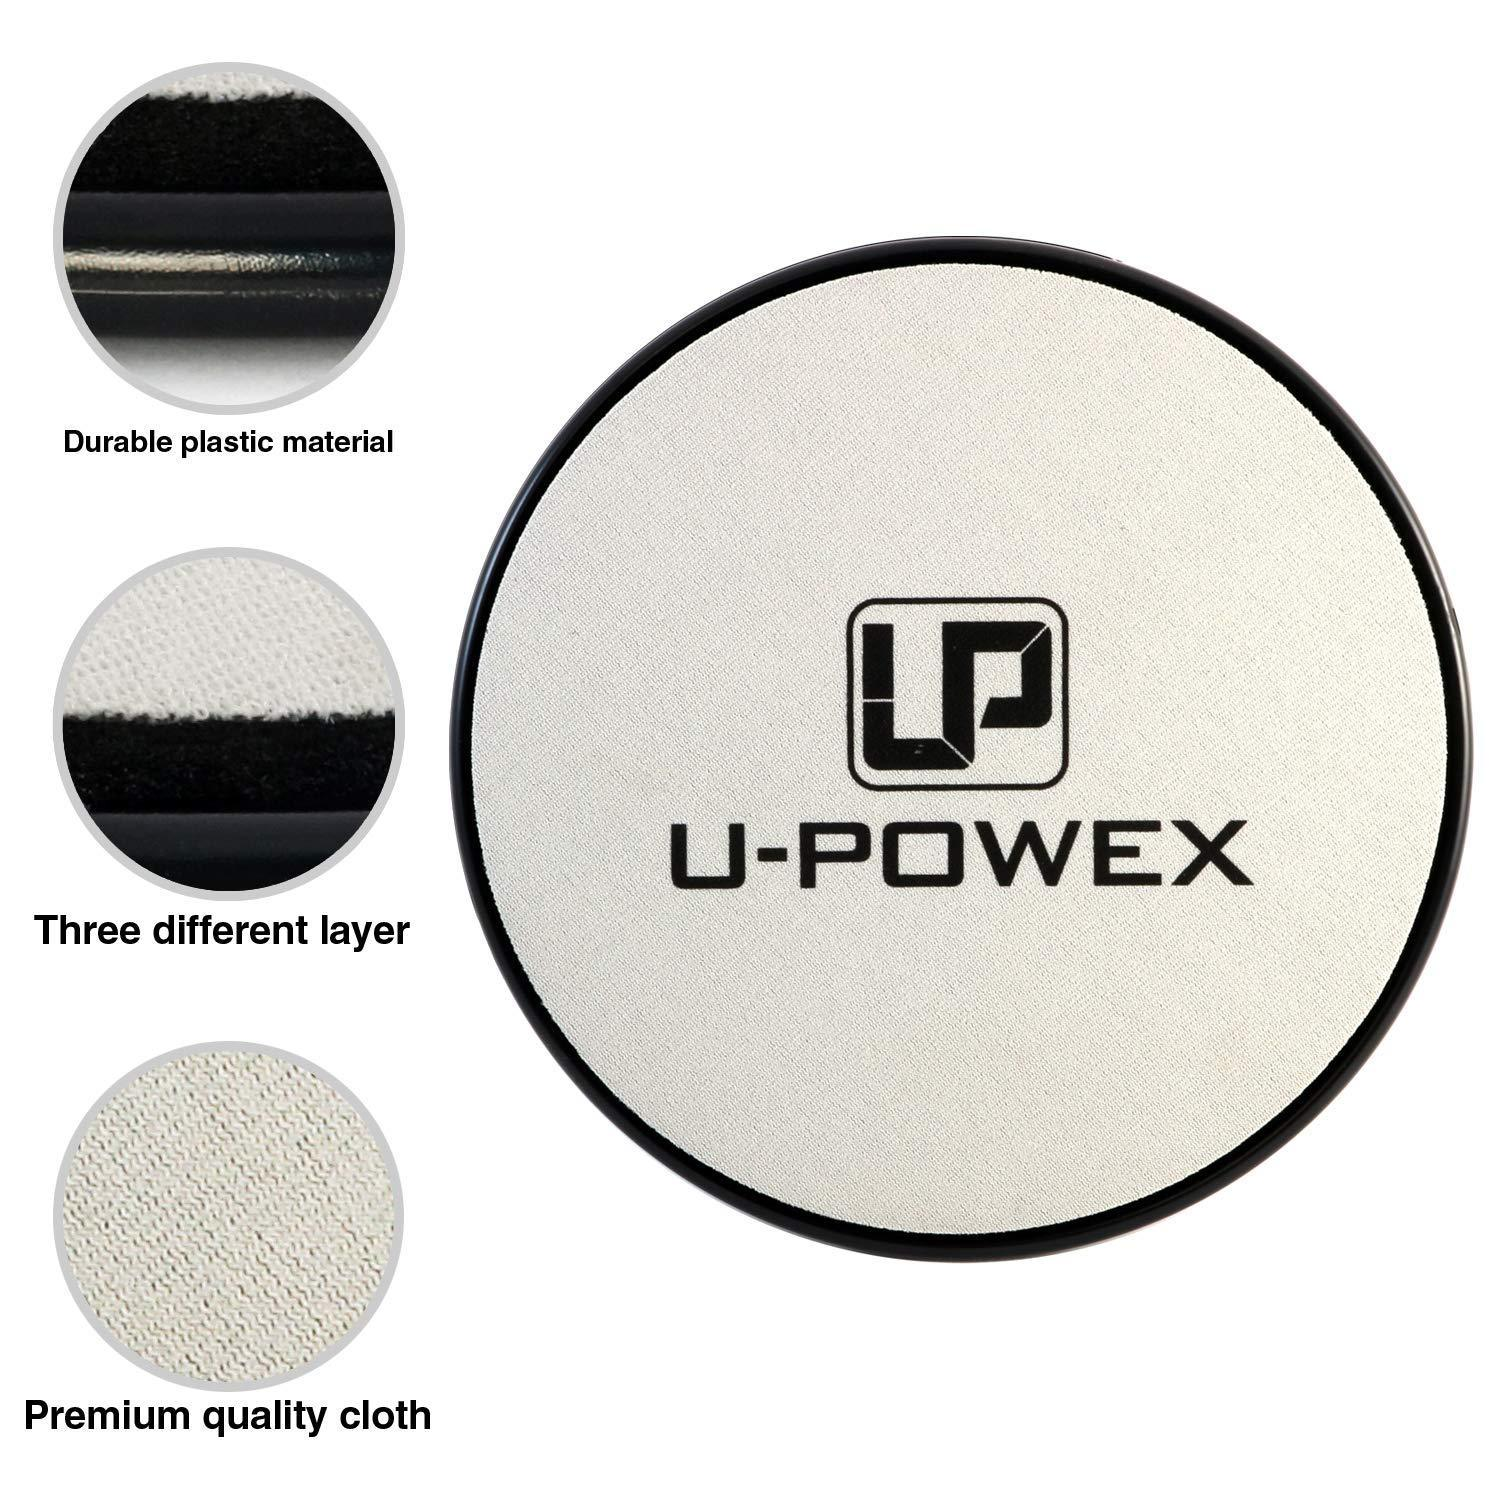 UPOWEX Exercise Sliders  Dual Sided Core Sliders – Work Smoothly on Any Surface. image 5